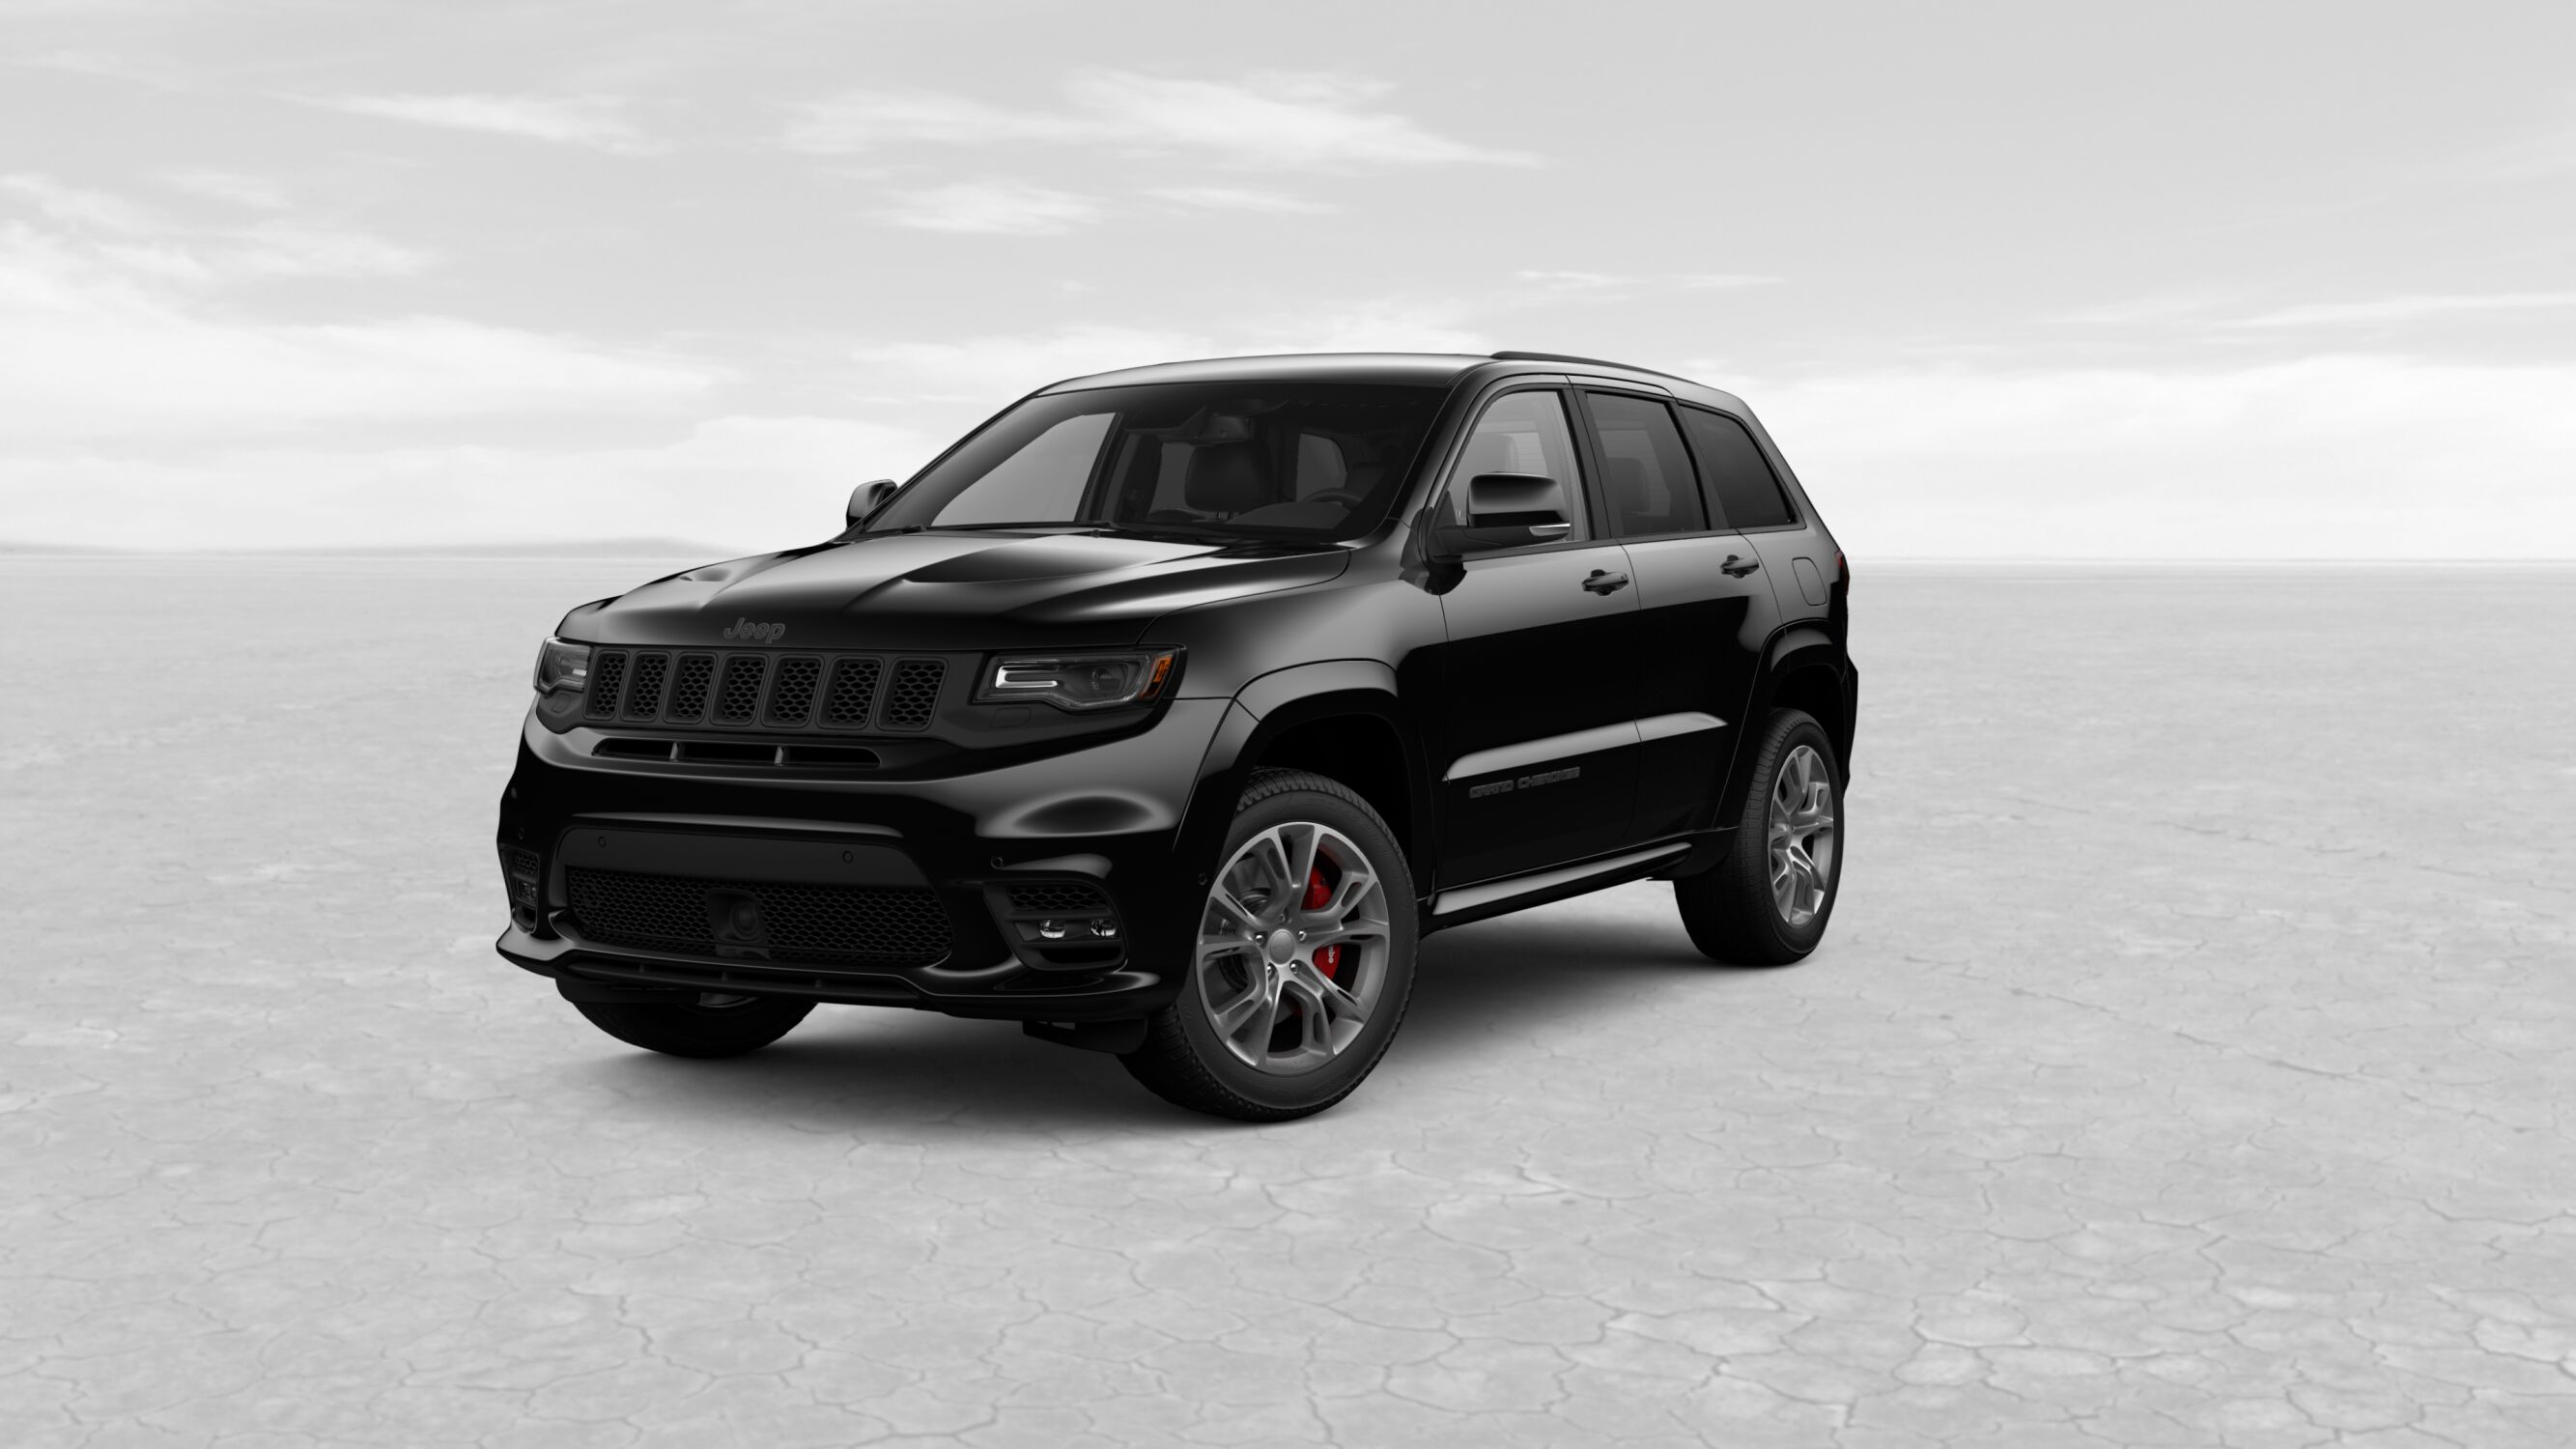 2018 jeep grand cherokee srt mark s casa chrysler jeep albuquerque nm. Black Bedroom Furniture Sets. Home Design Ideas